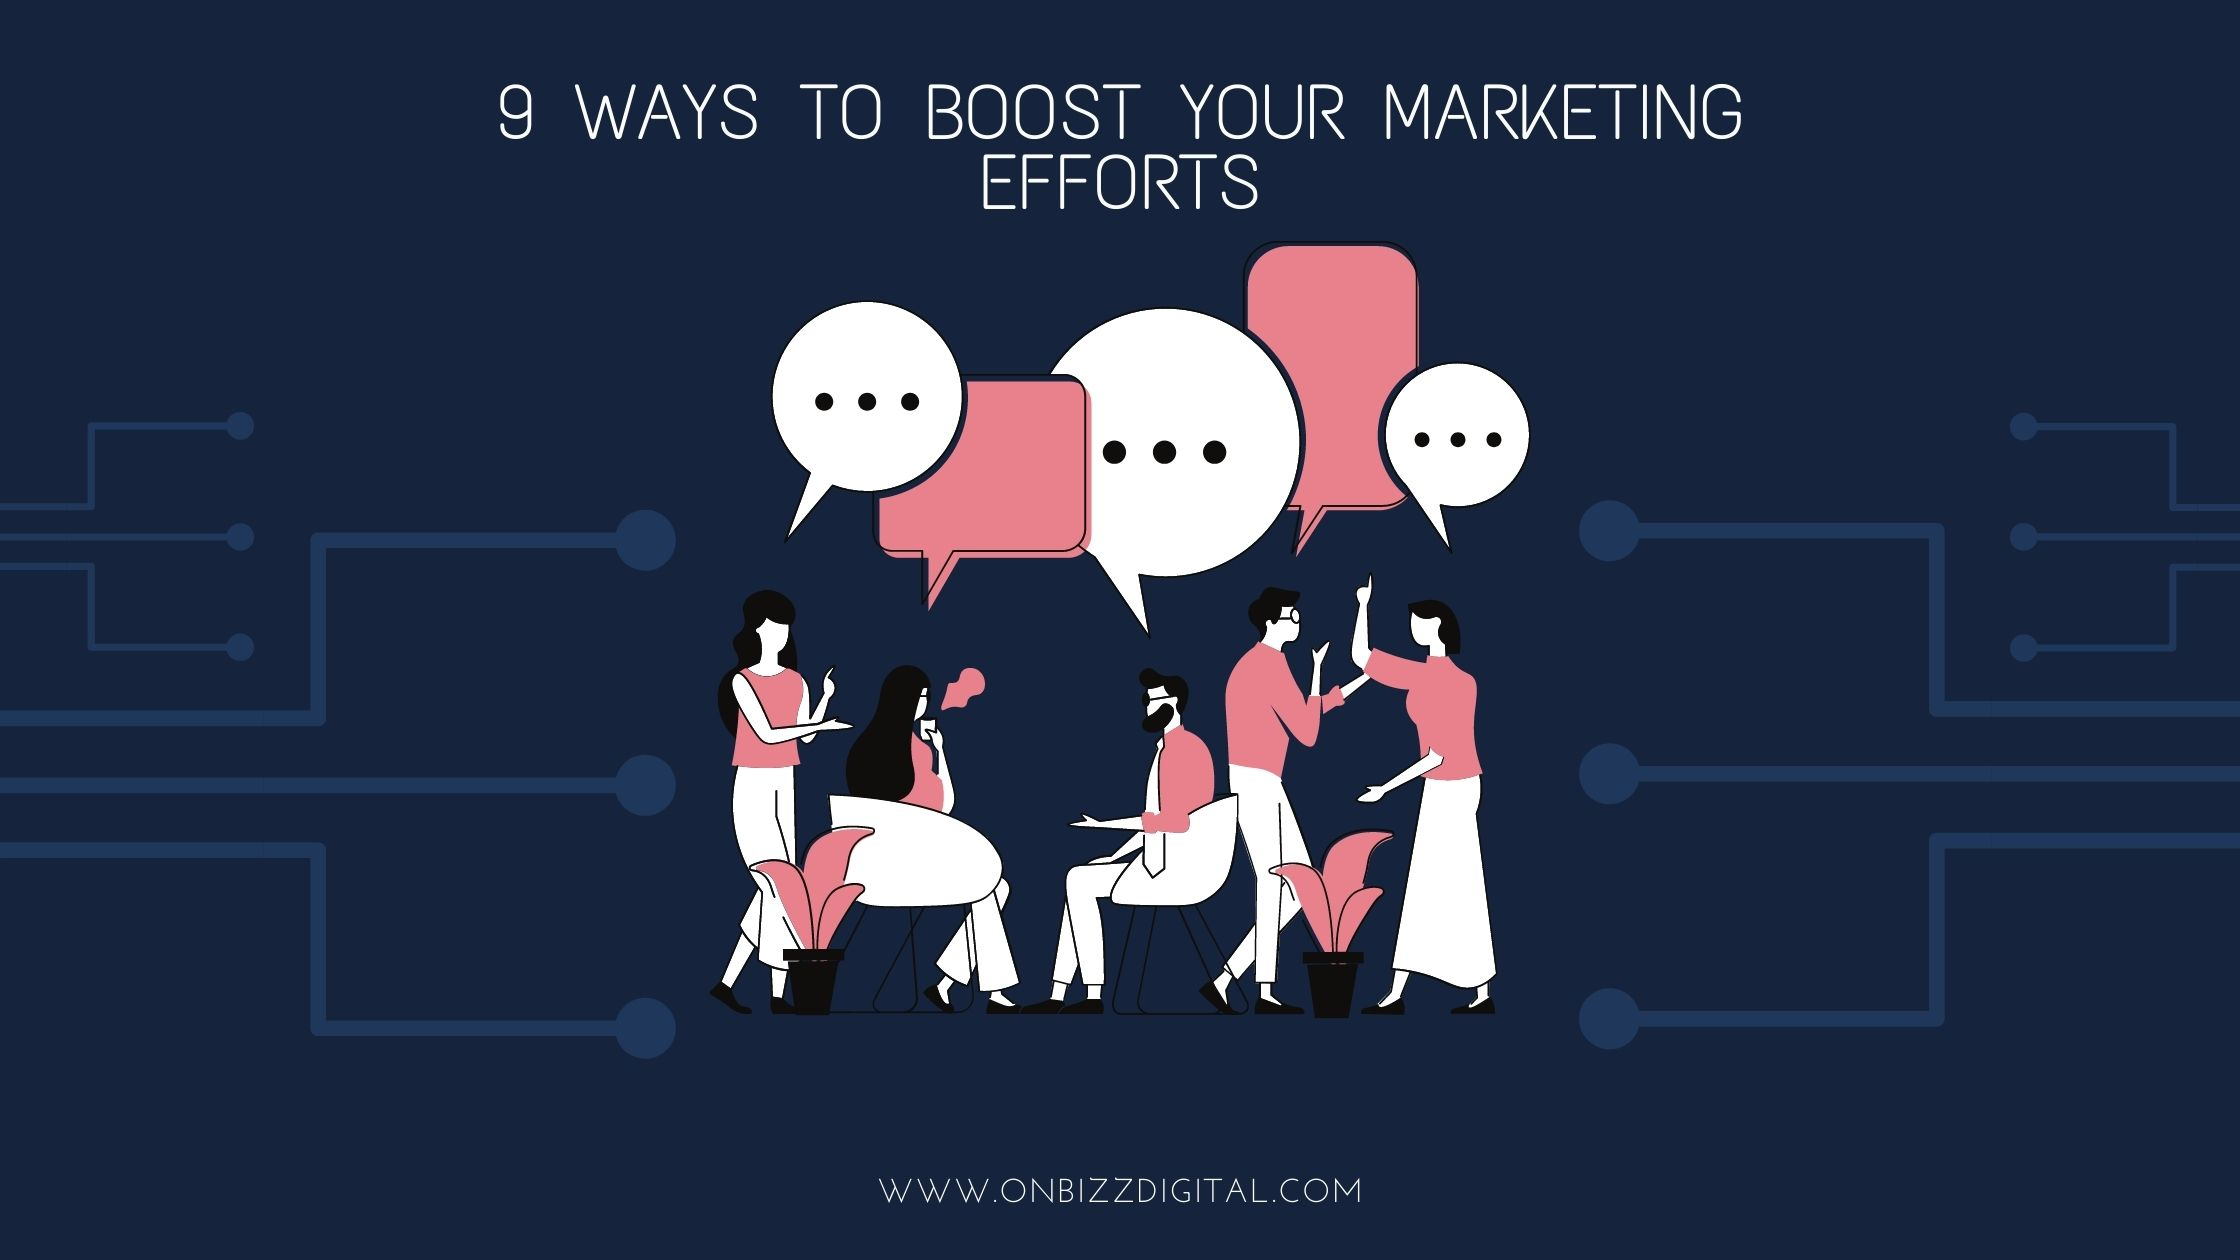 9 ways to boost marketing efforts